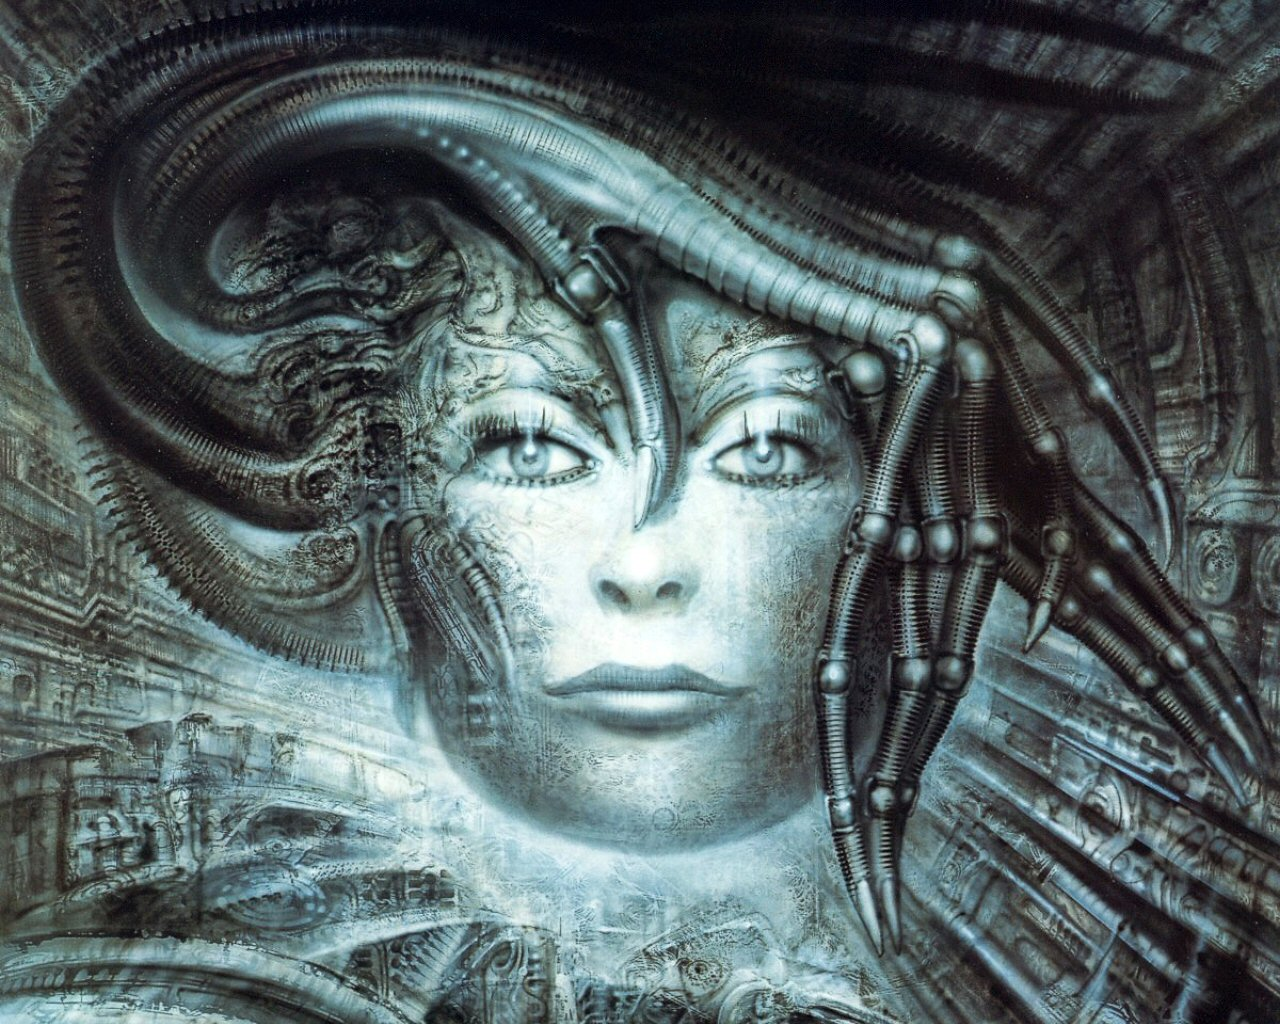 Hd Hr Giger Wallpaper | New hd wallon